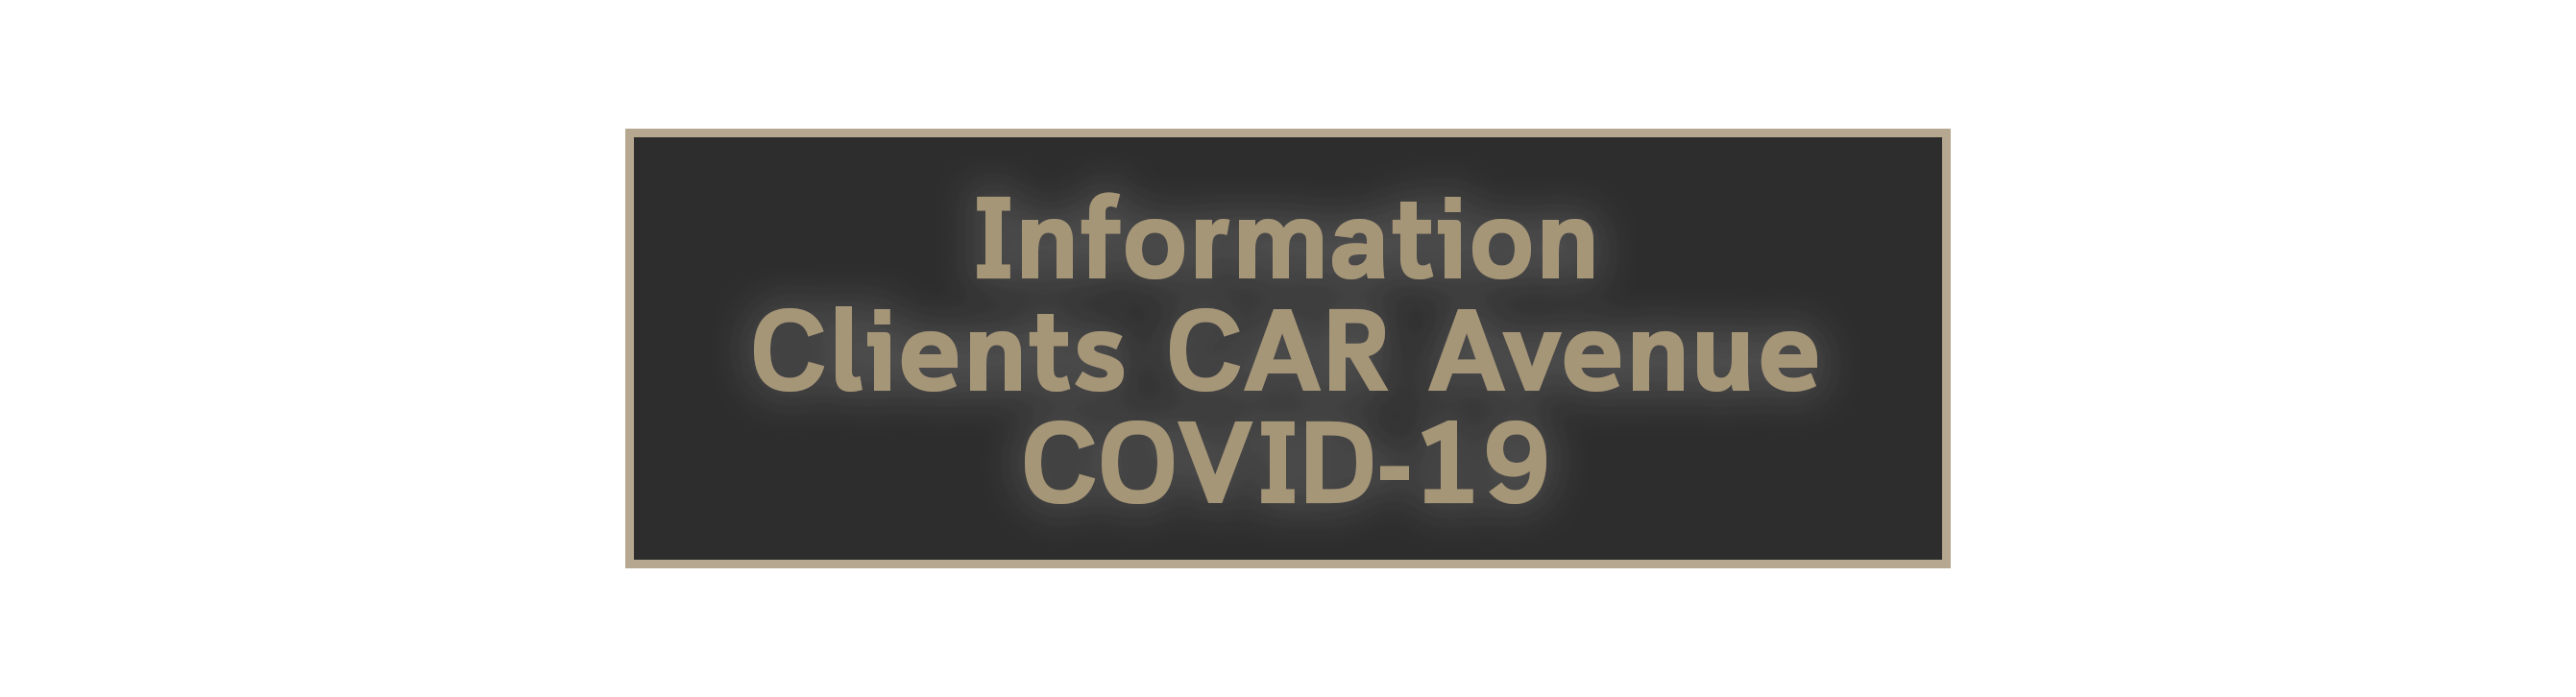 Information-Clients-CAR-Avenue.png